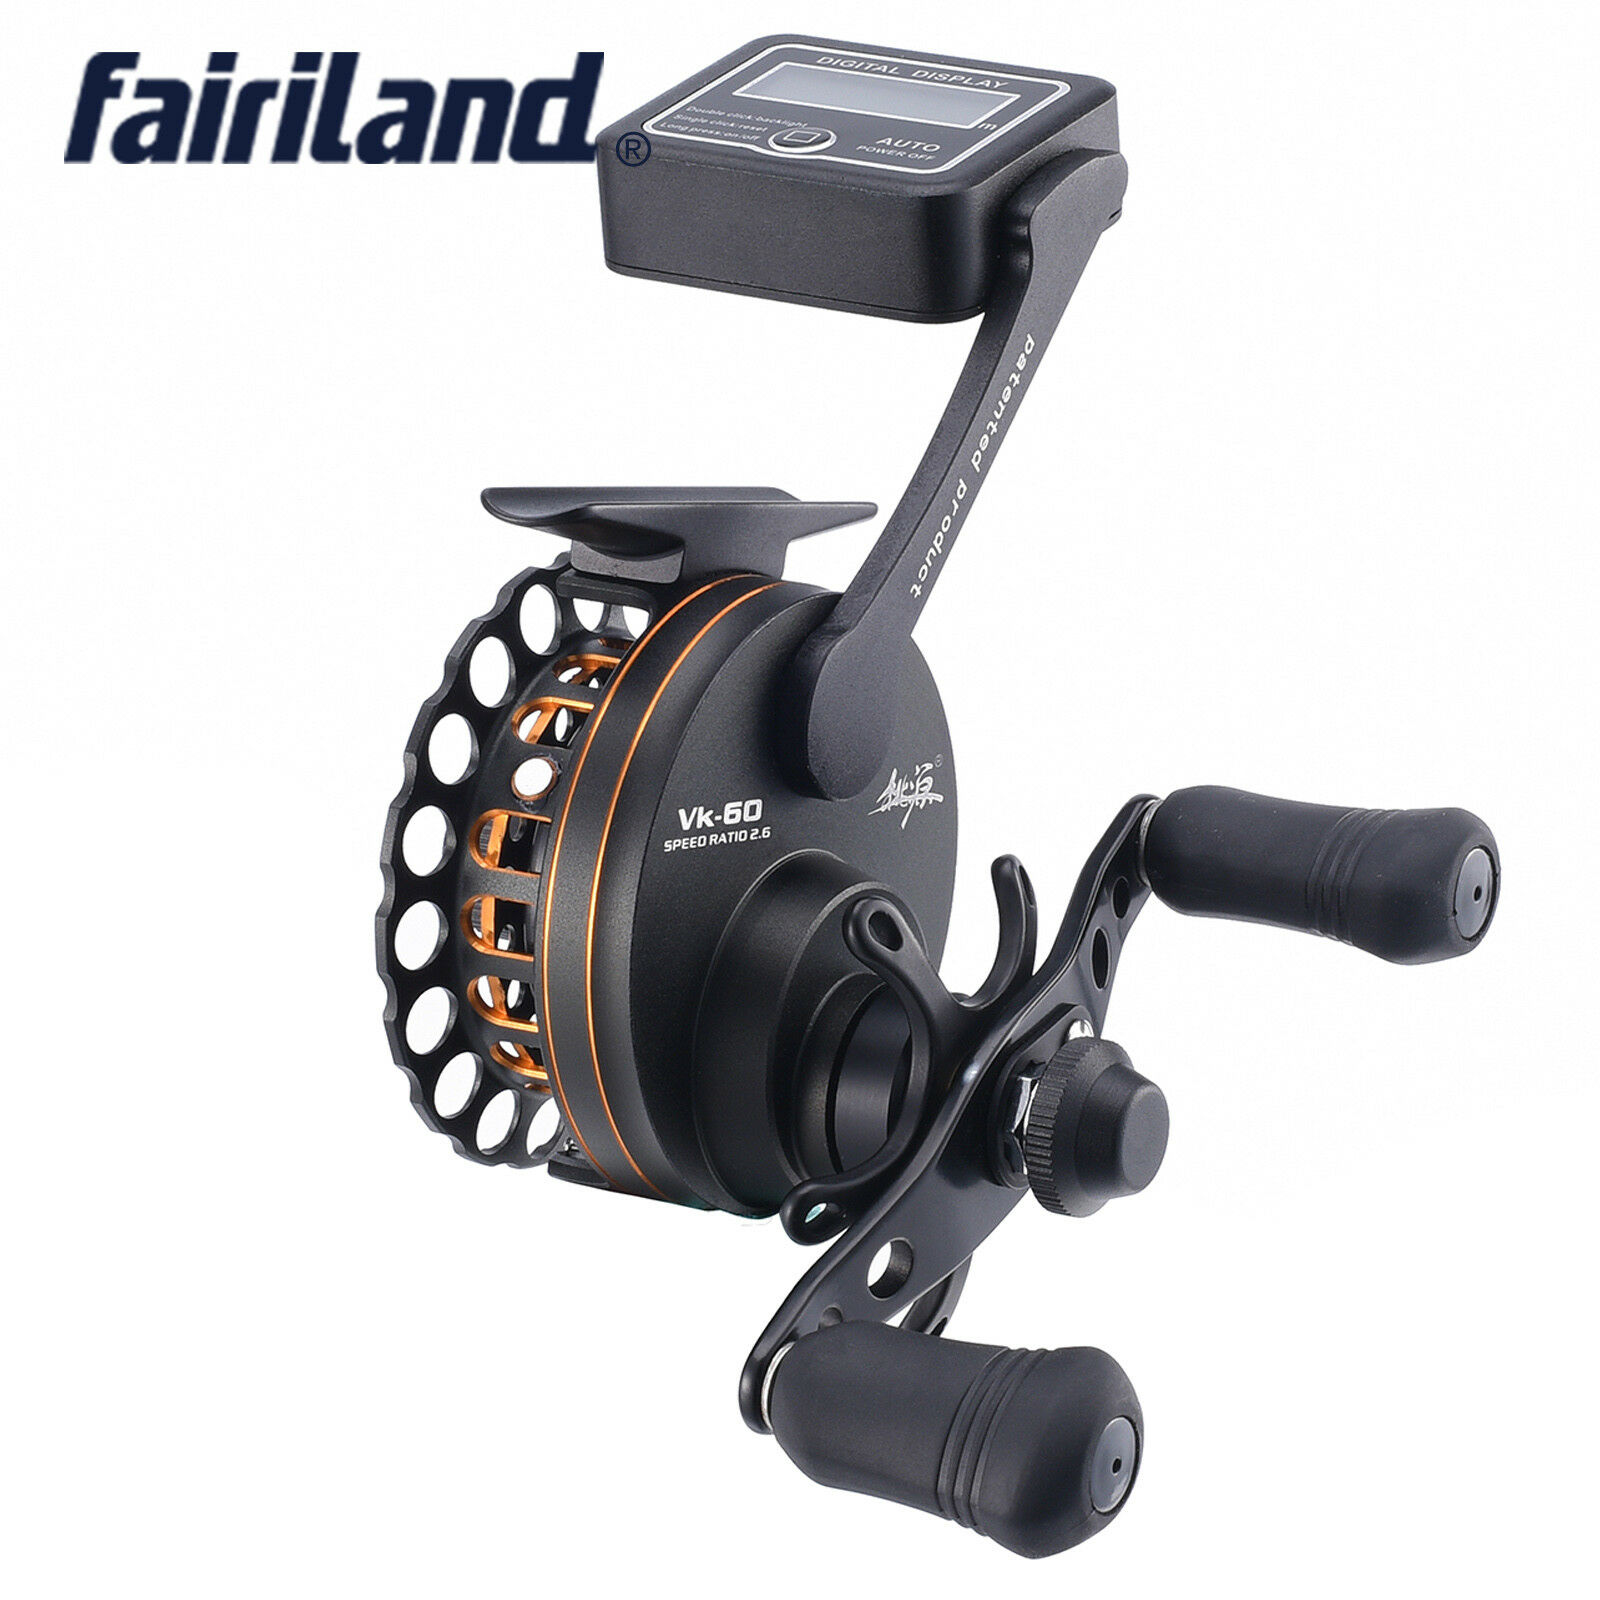 6BB 2.6  1 full metal L R hand with line counter raft fishing reel fly ice reel  great selection & quick delivery